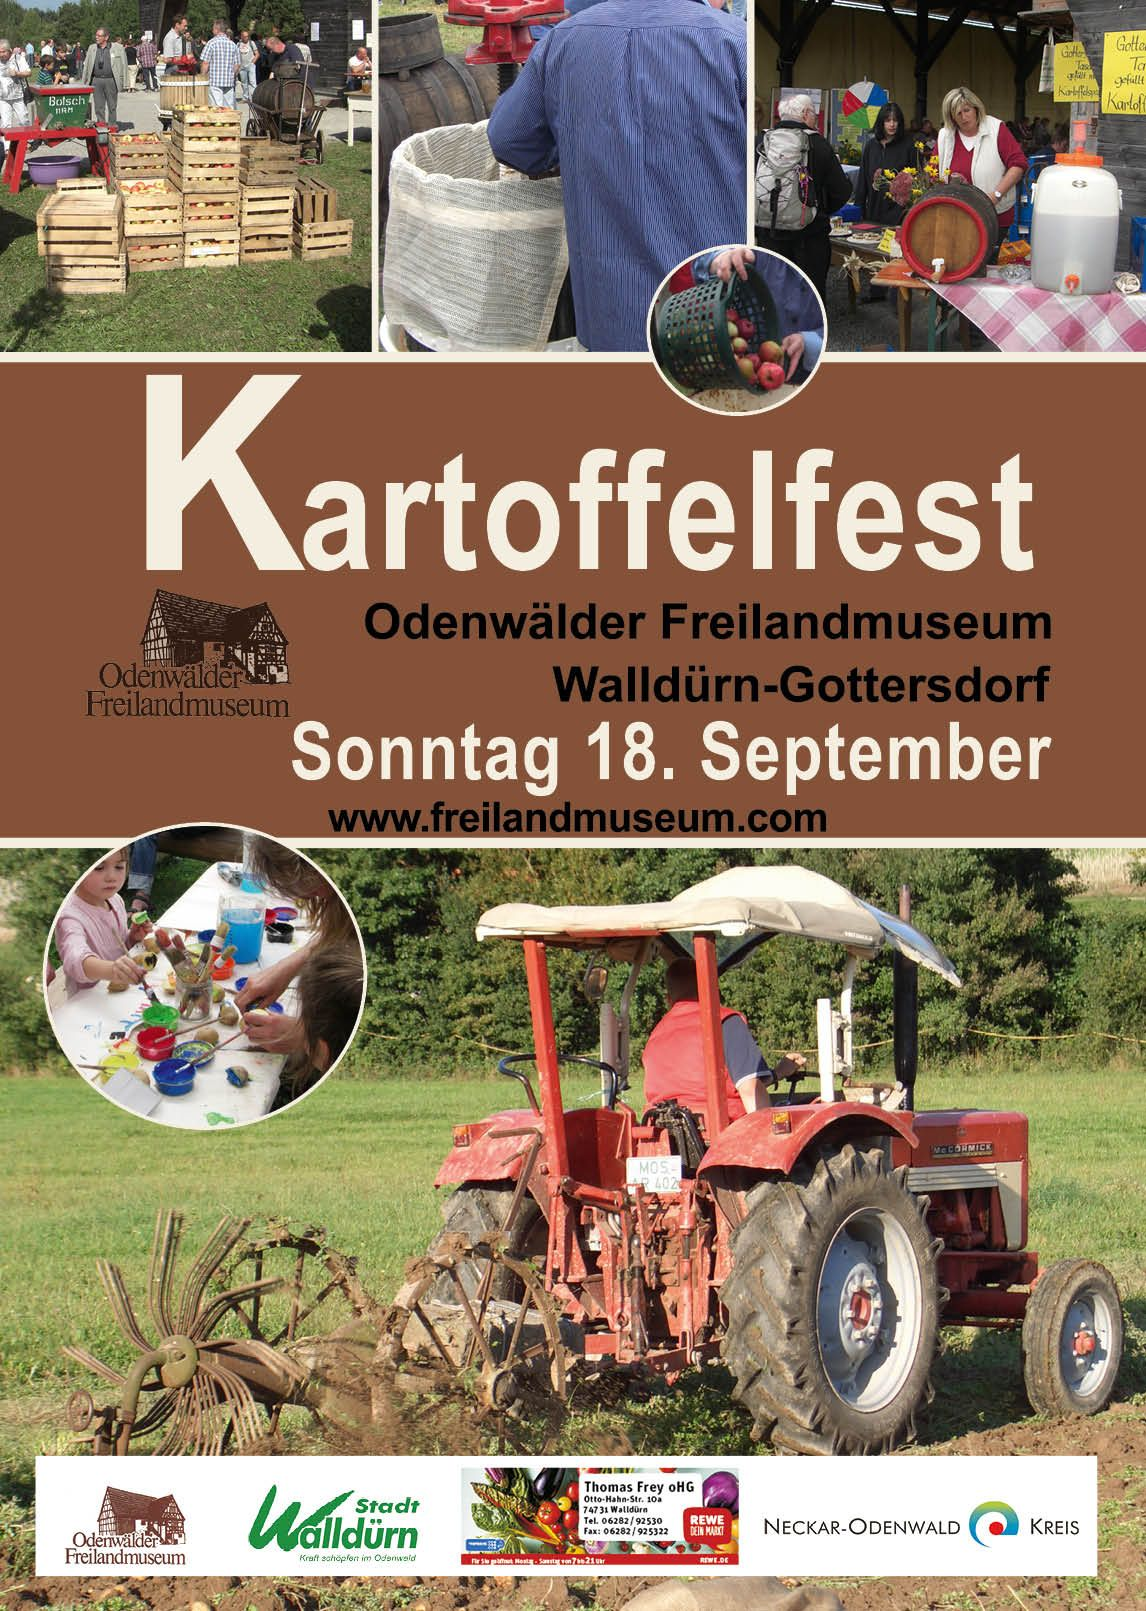 Kartoffelfest am 18. September